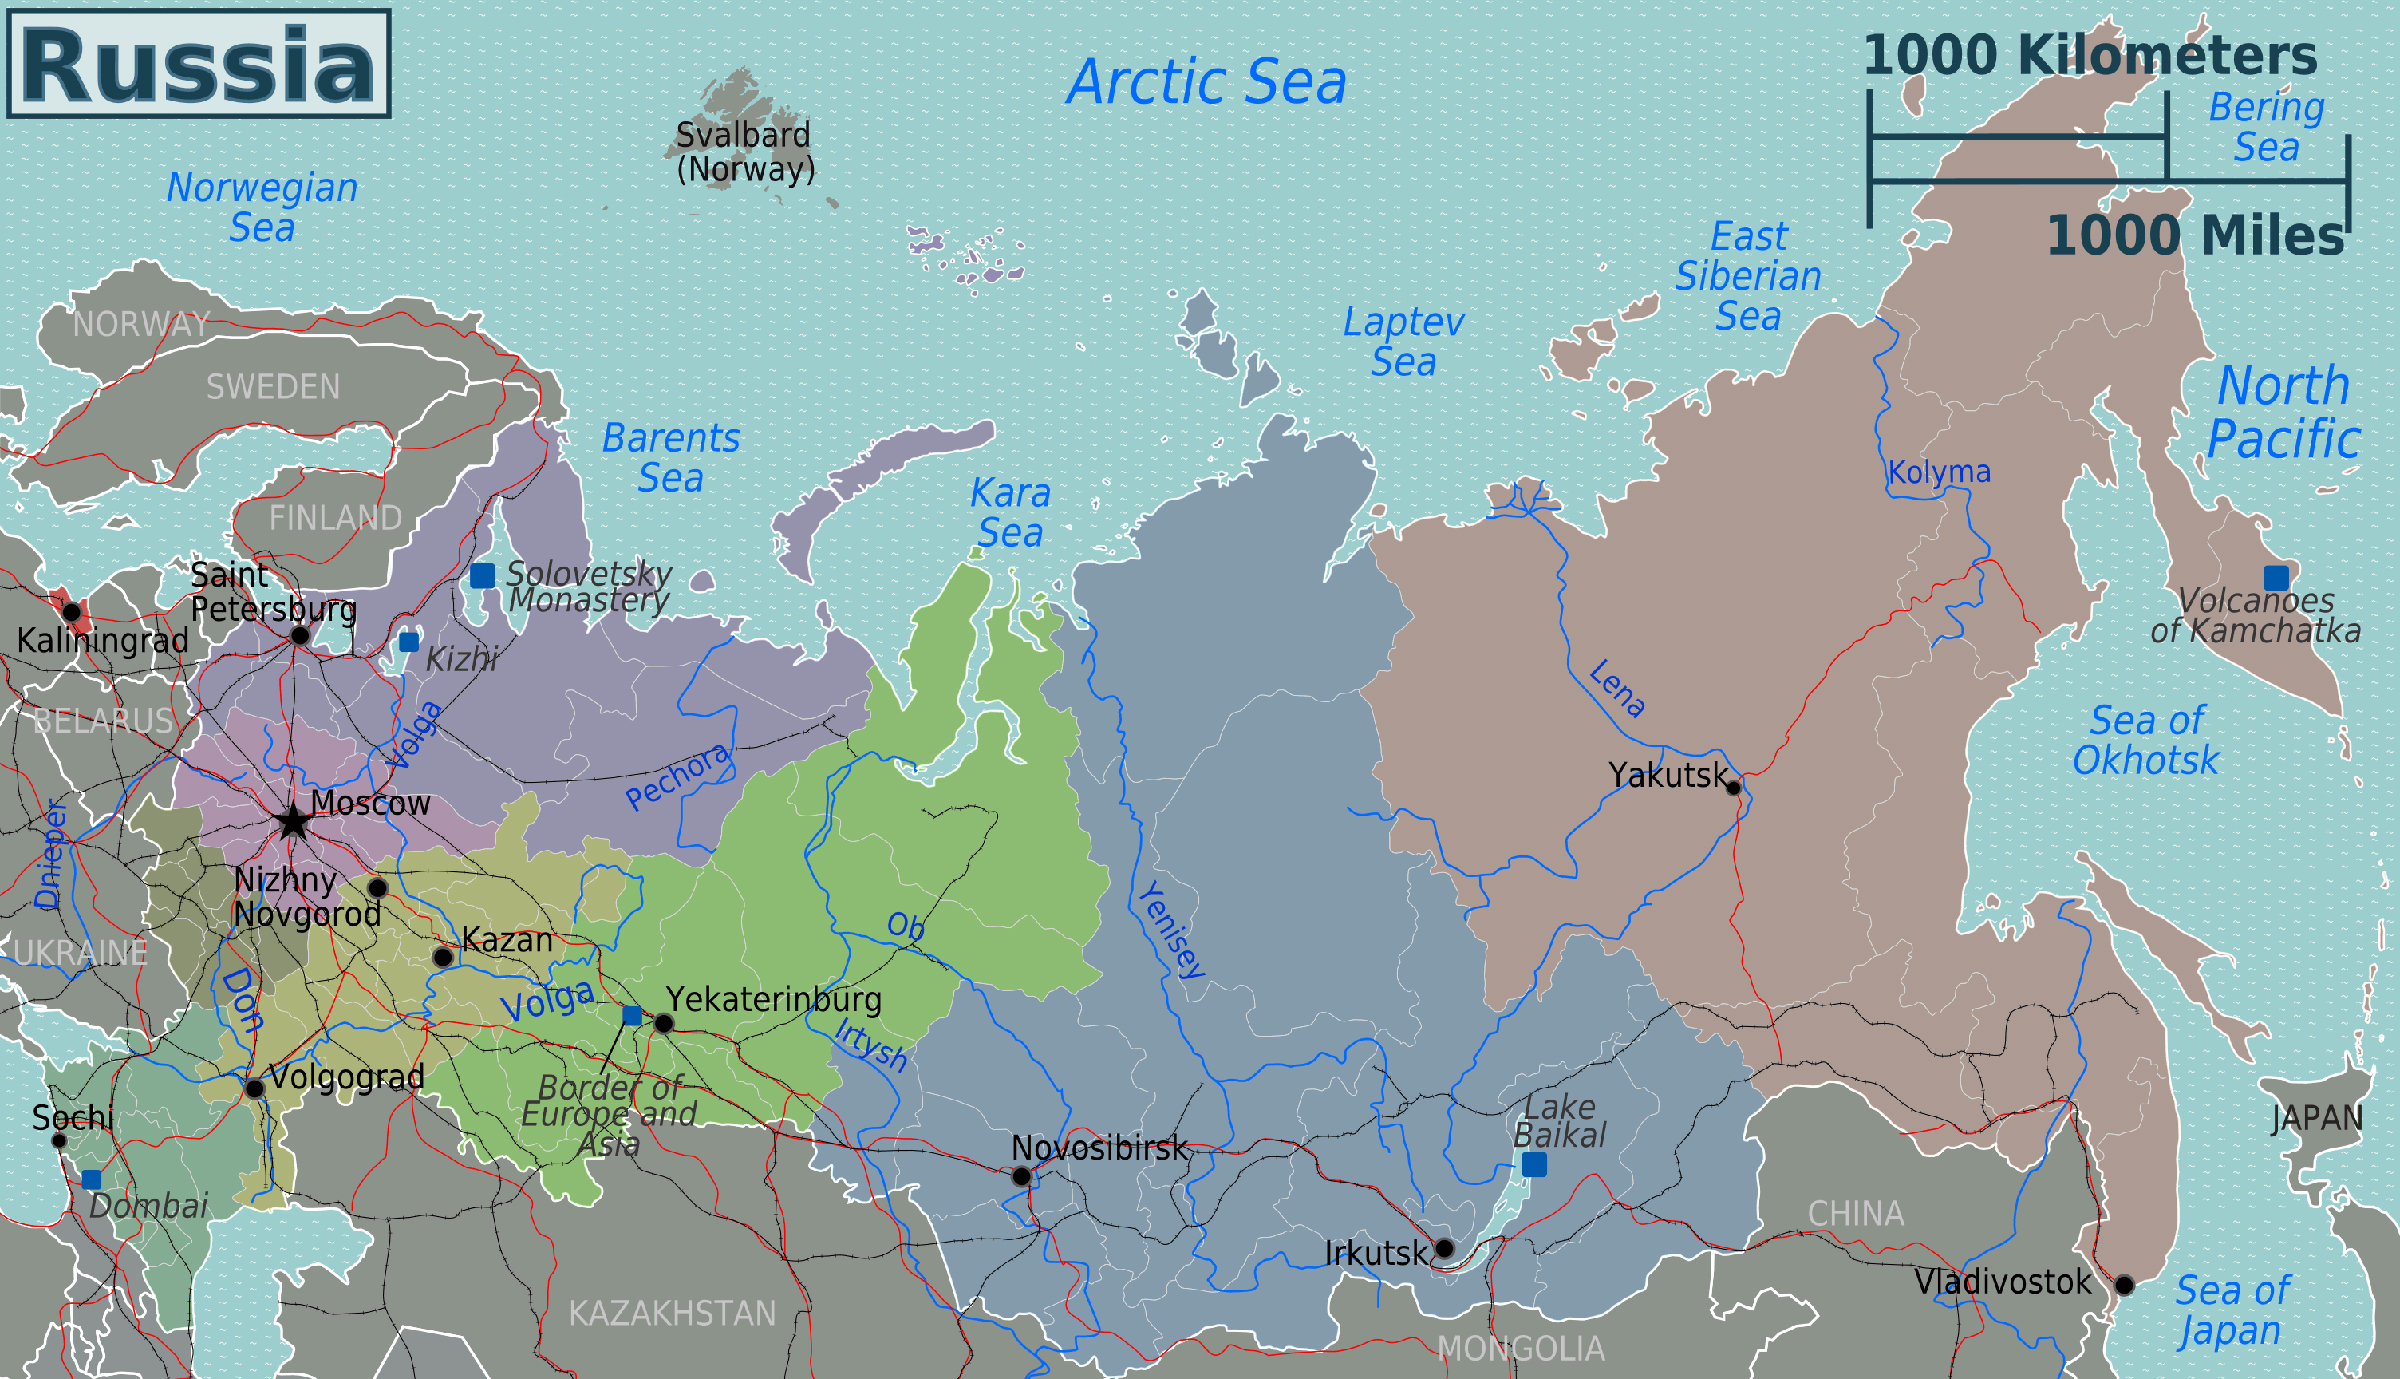 an overview of russia Russian history: a brief summary situated on the great eurasian plane, russia has been vulnerable to invasions from both east and west (mongols, 13-14 th cent.